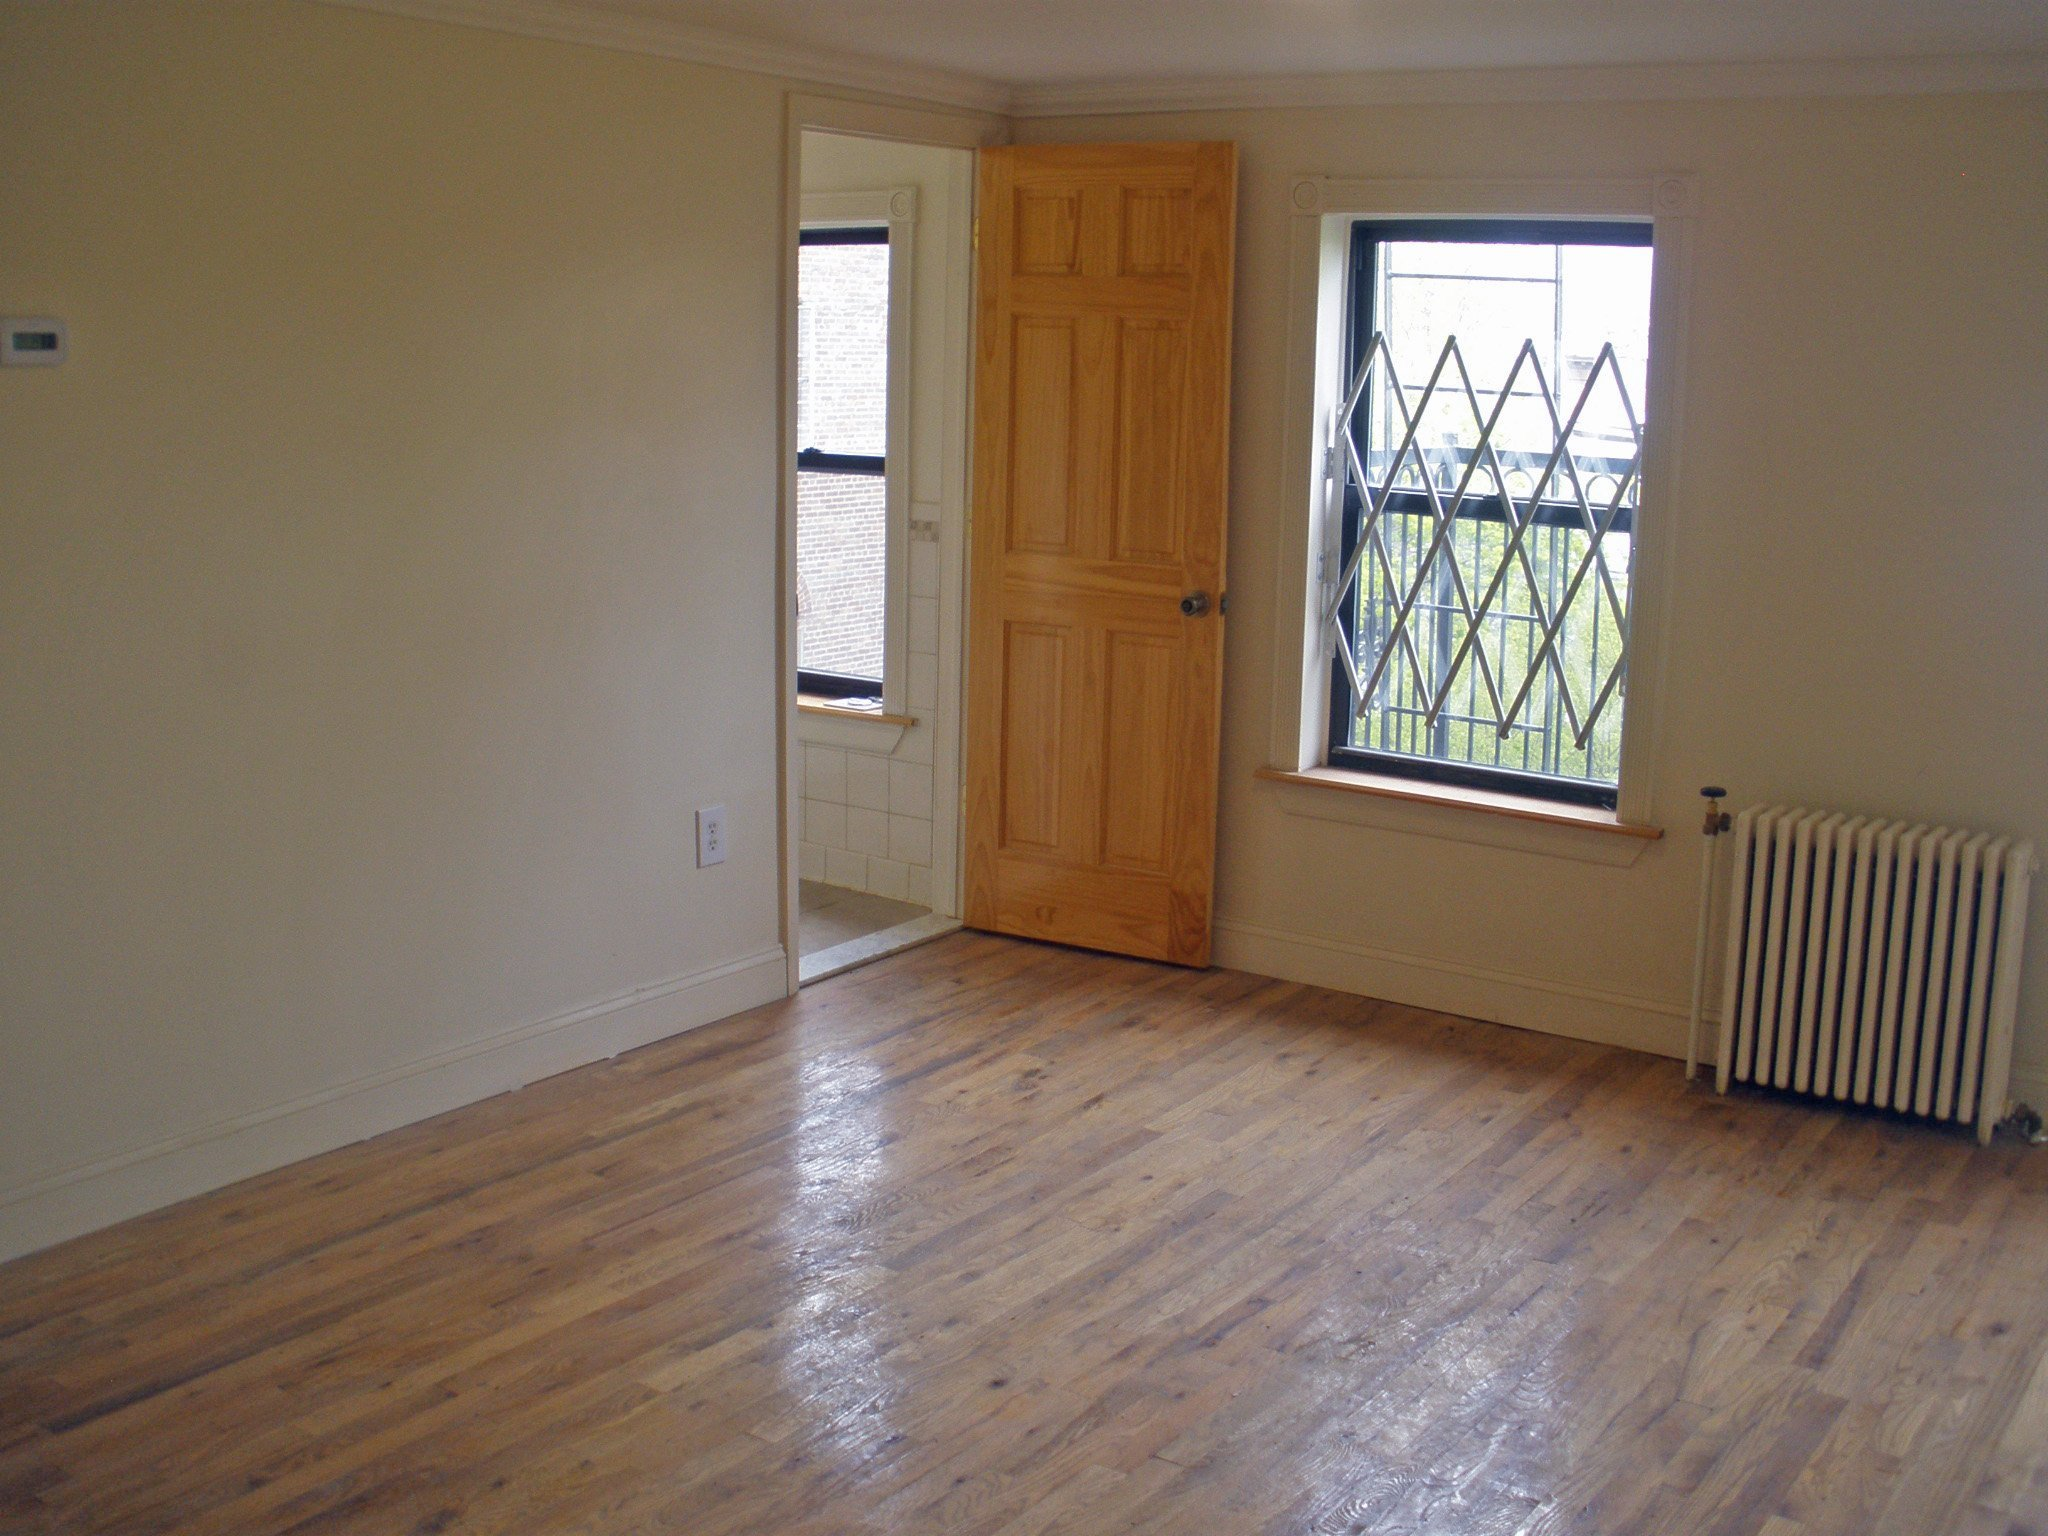 2 bedroom bed stuy apartment for rent brooklyn crg3091 for 2 bedroom apartments for rent